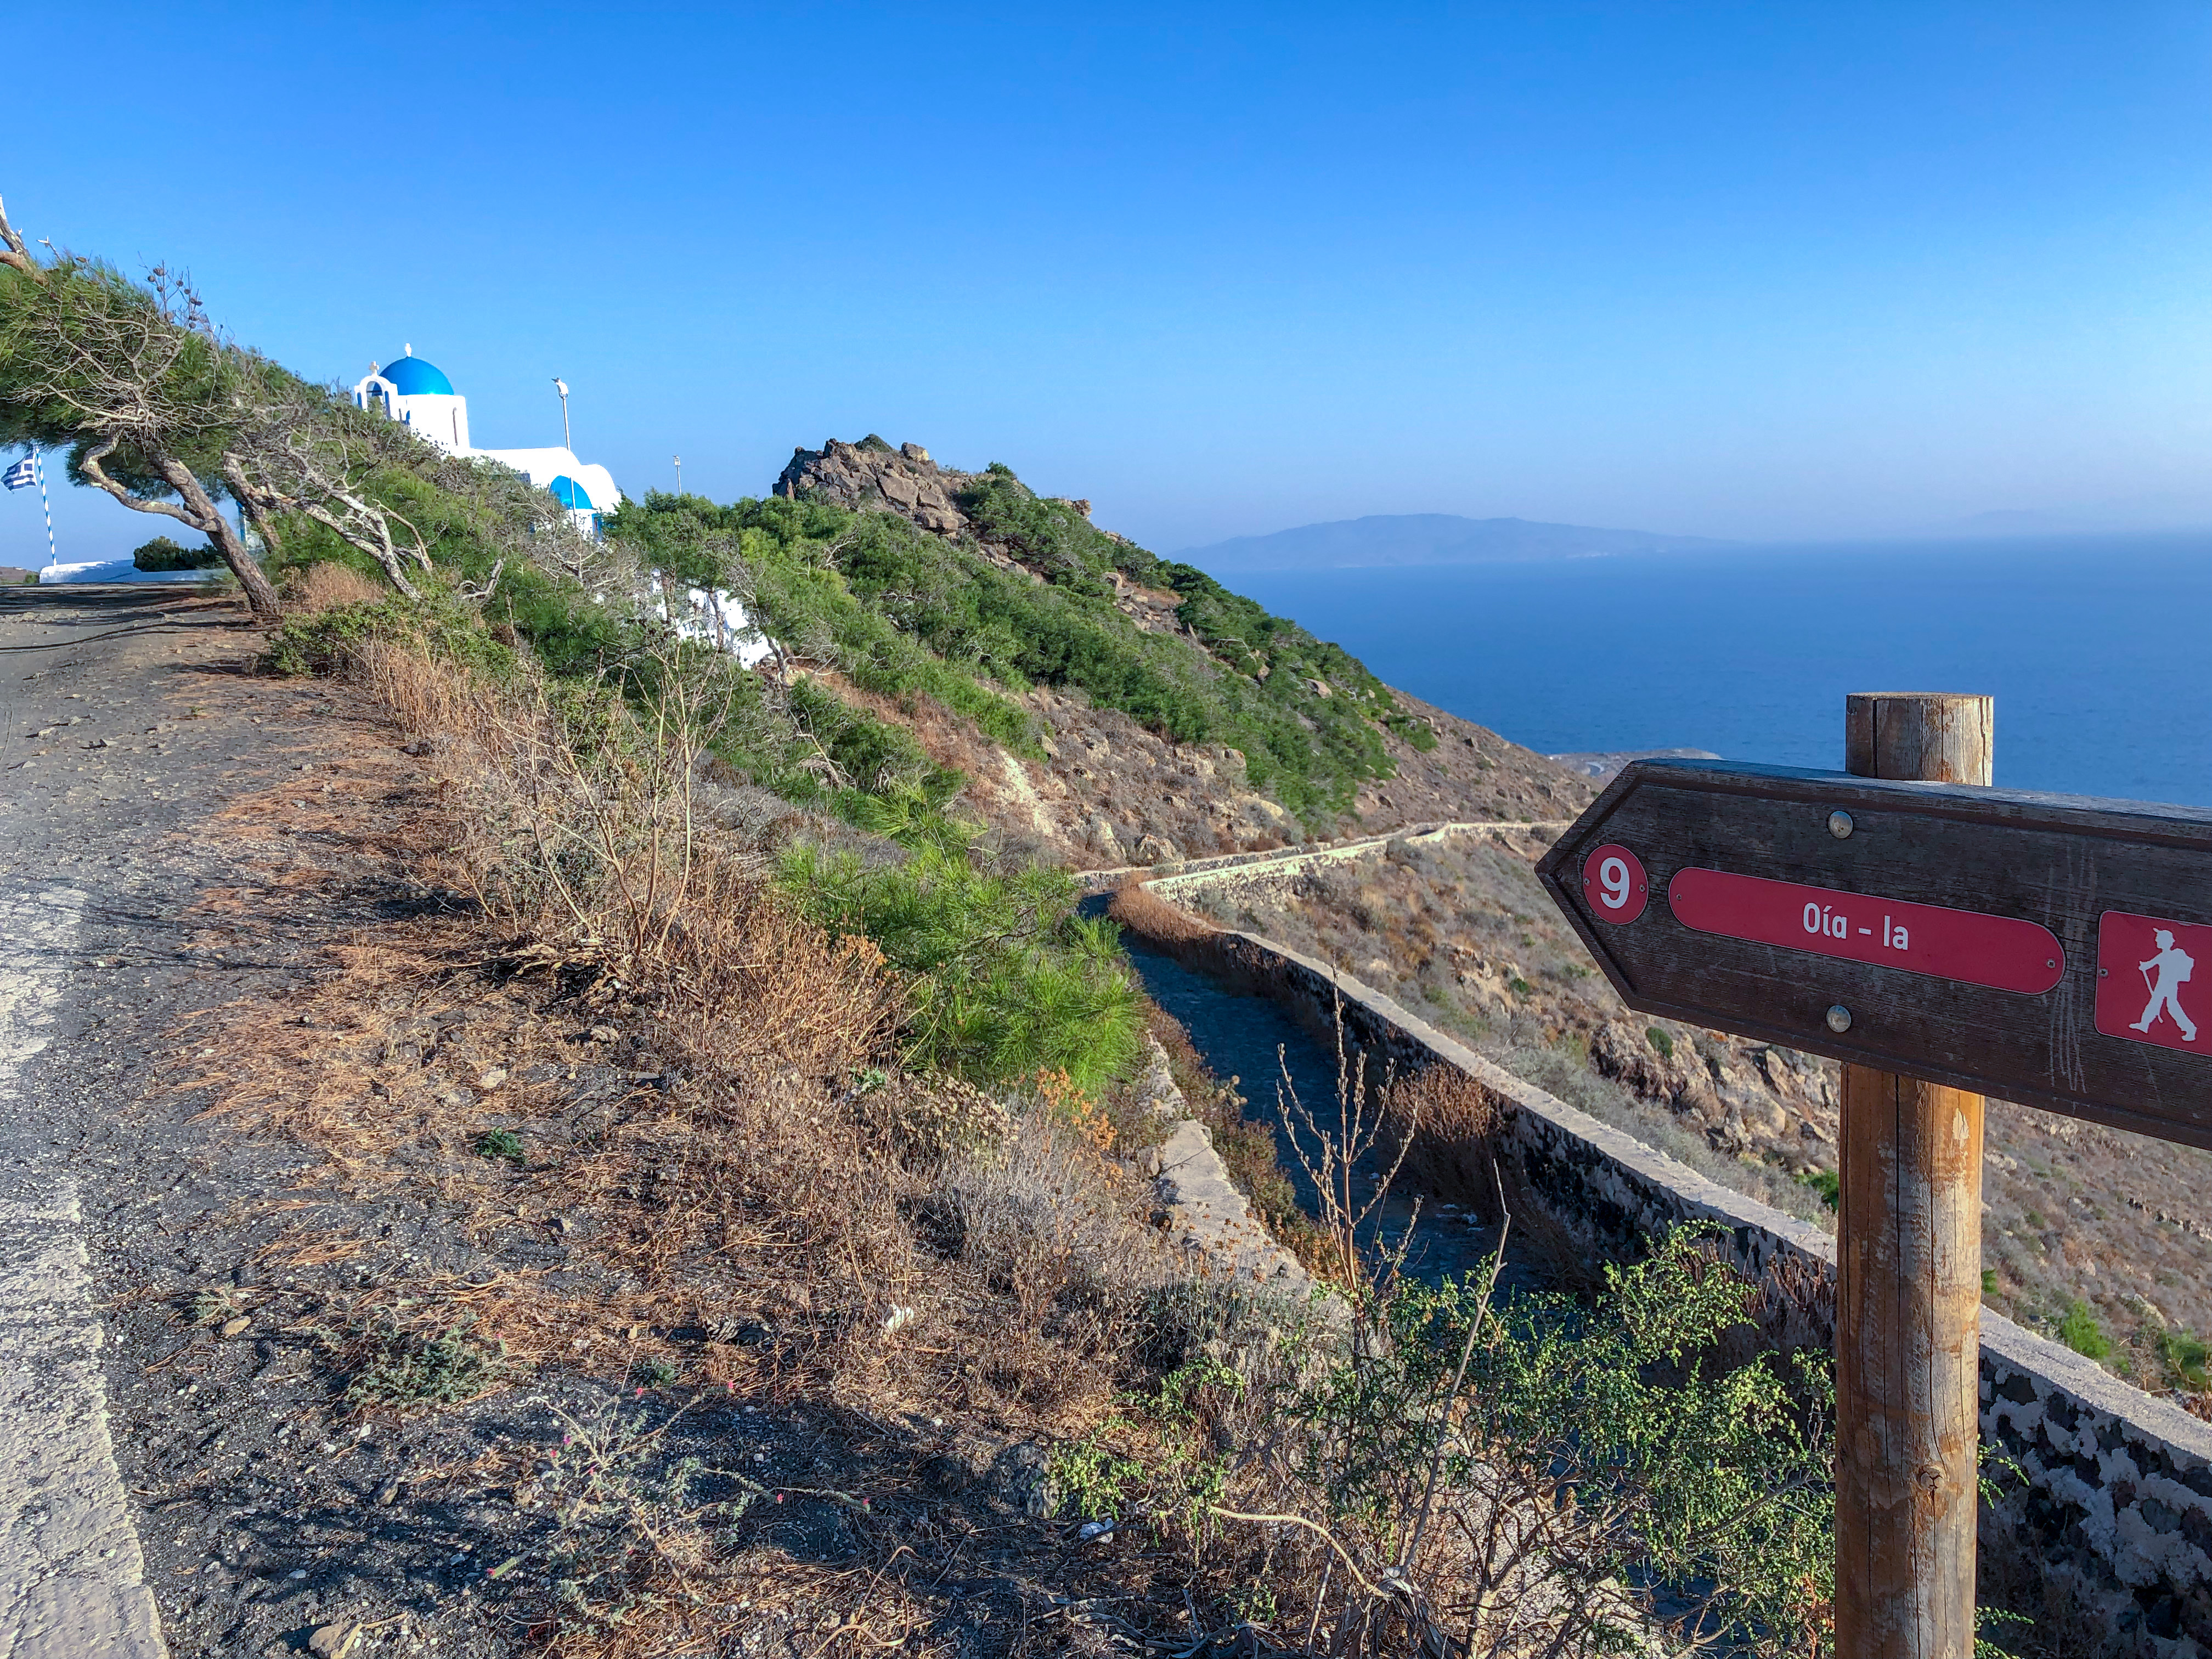 The trail sign that shows the direction for the Fira to Oia Hike, Santorini; a blue domed church can be seen in the distance.